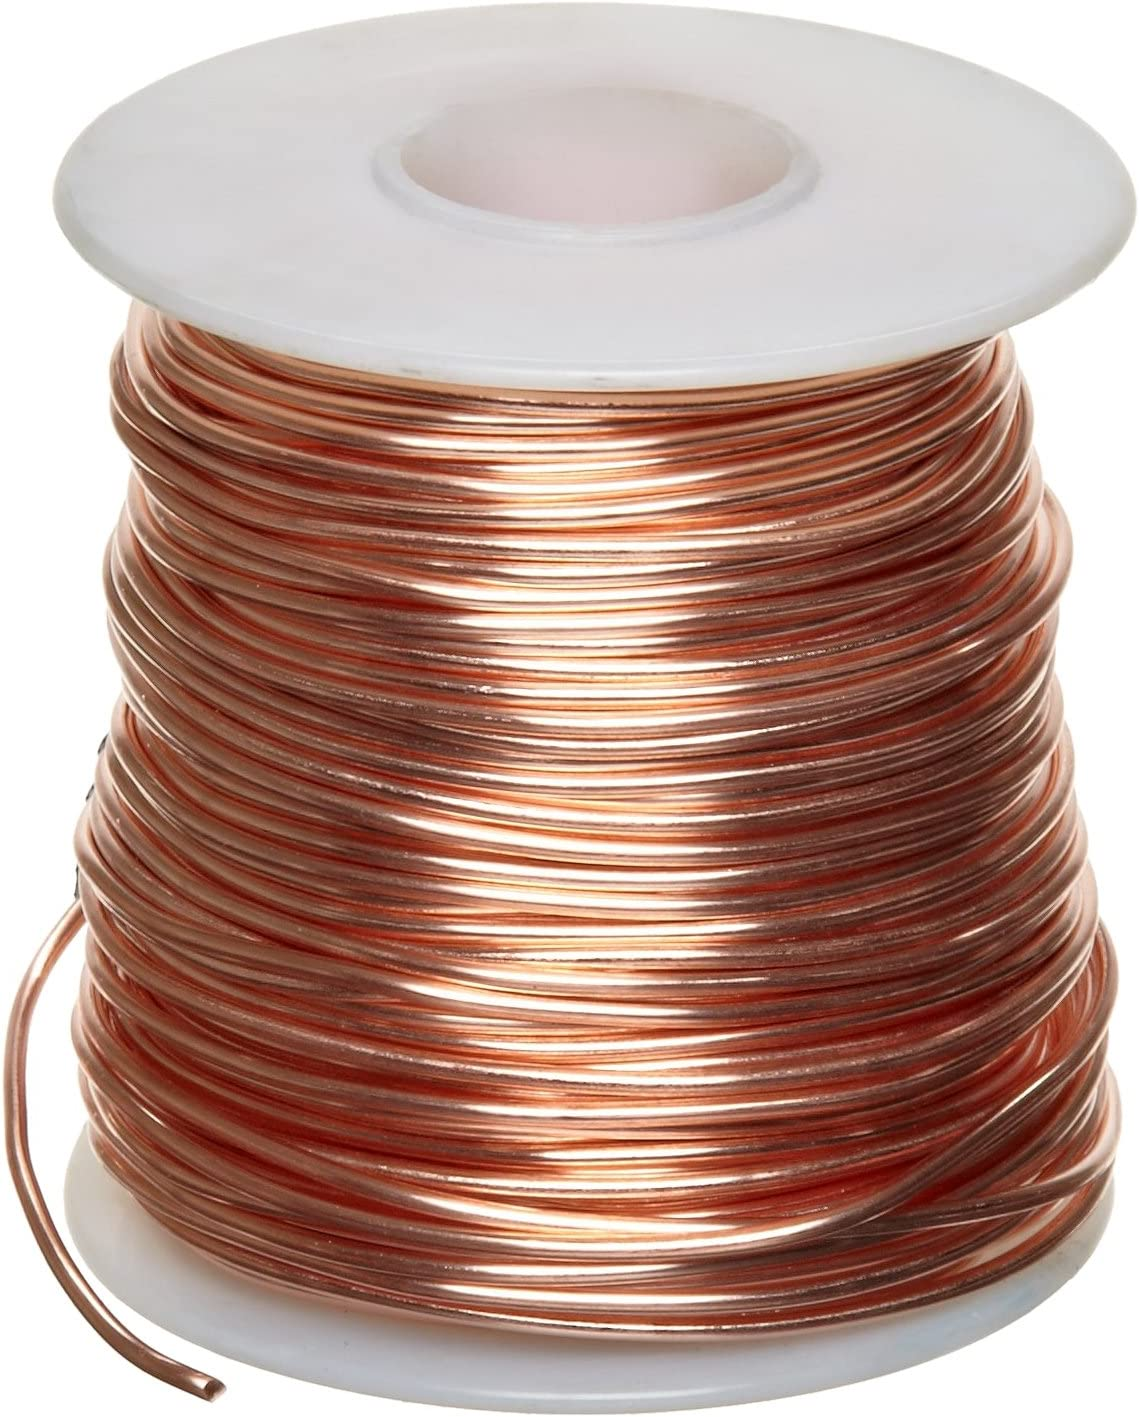 "B000IJYRK2 Bare Copper Wire, Bright, 22 AWG, 0.025"" Diameter, 500' Length (Pack of 1) 81opAzJl5kL"